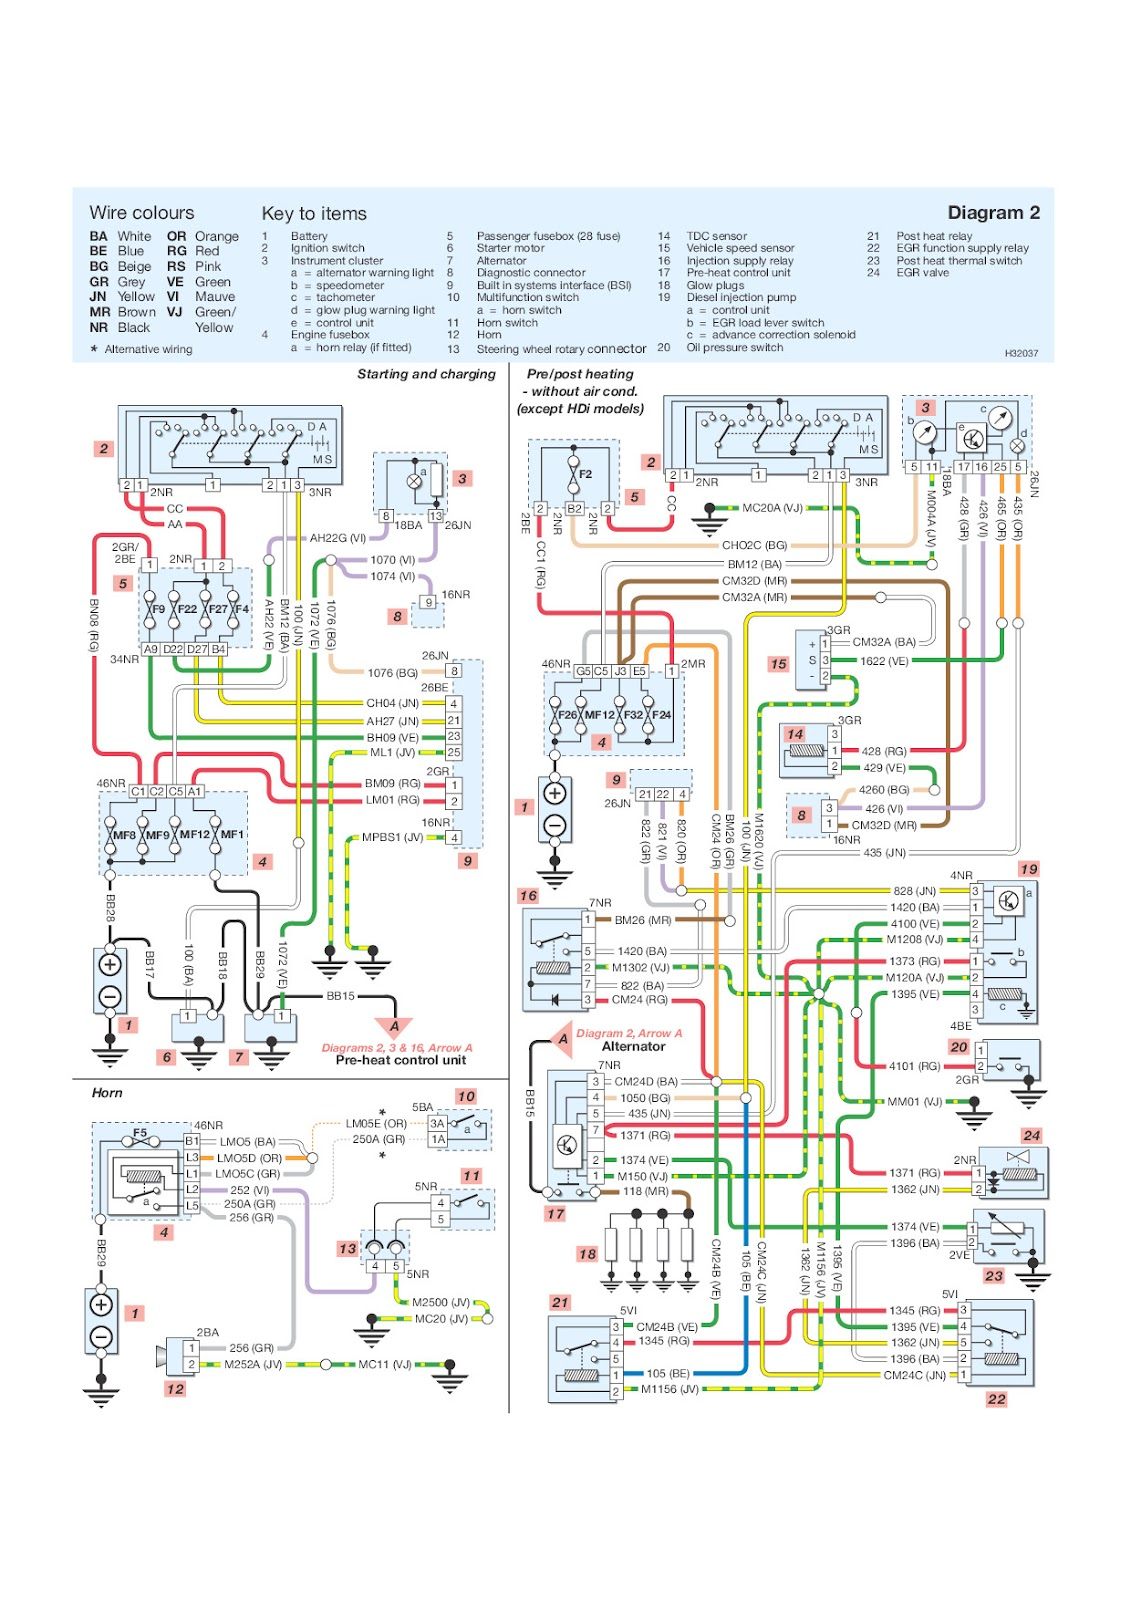 wiring diagrams source peugeot 206 pre post heating engine cooling peugeot engine cooling diagram [ 1131 x 1600 Pixel ]